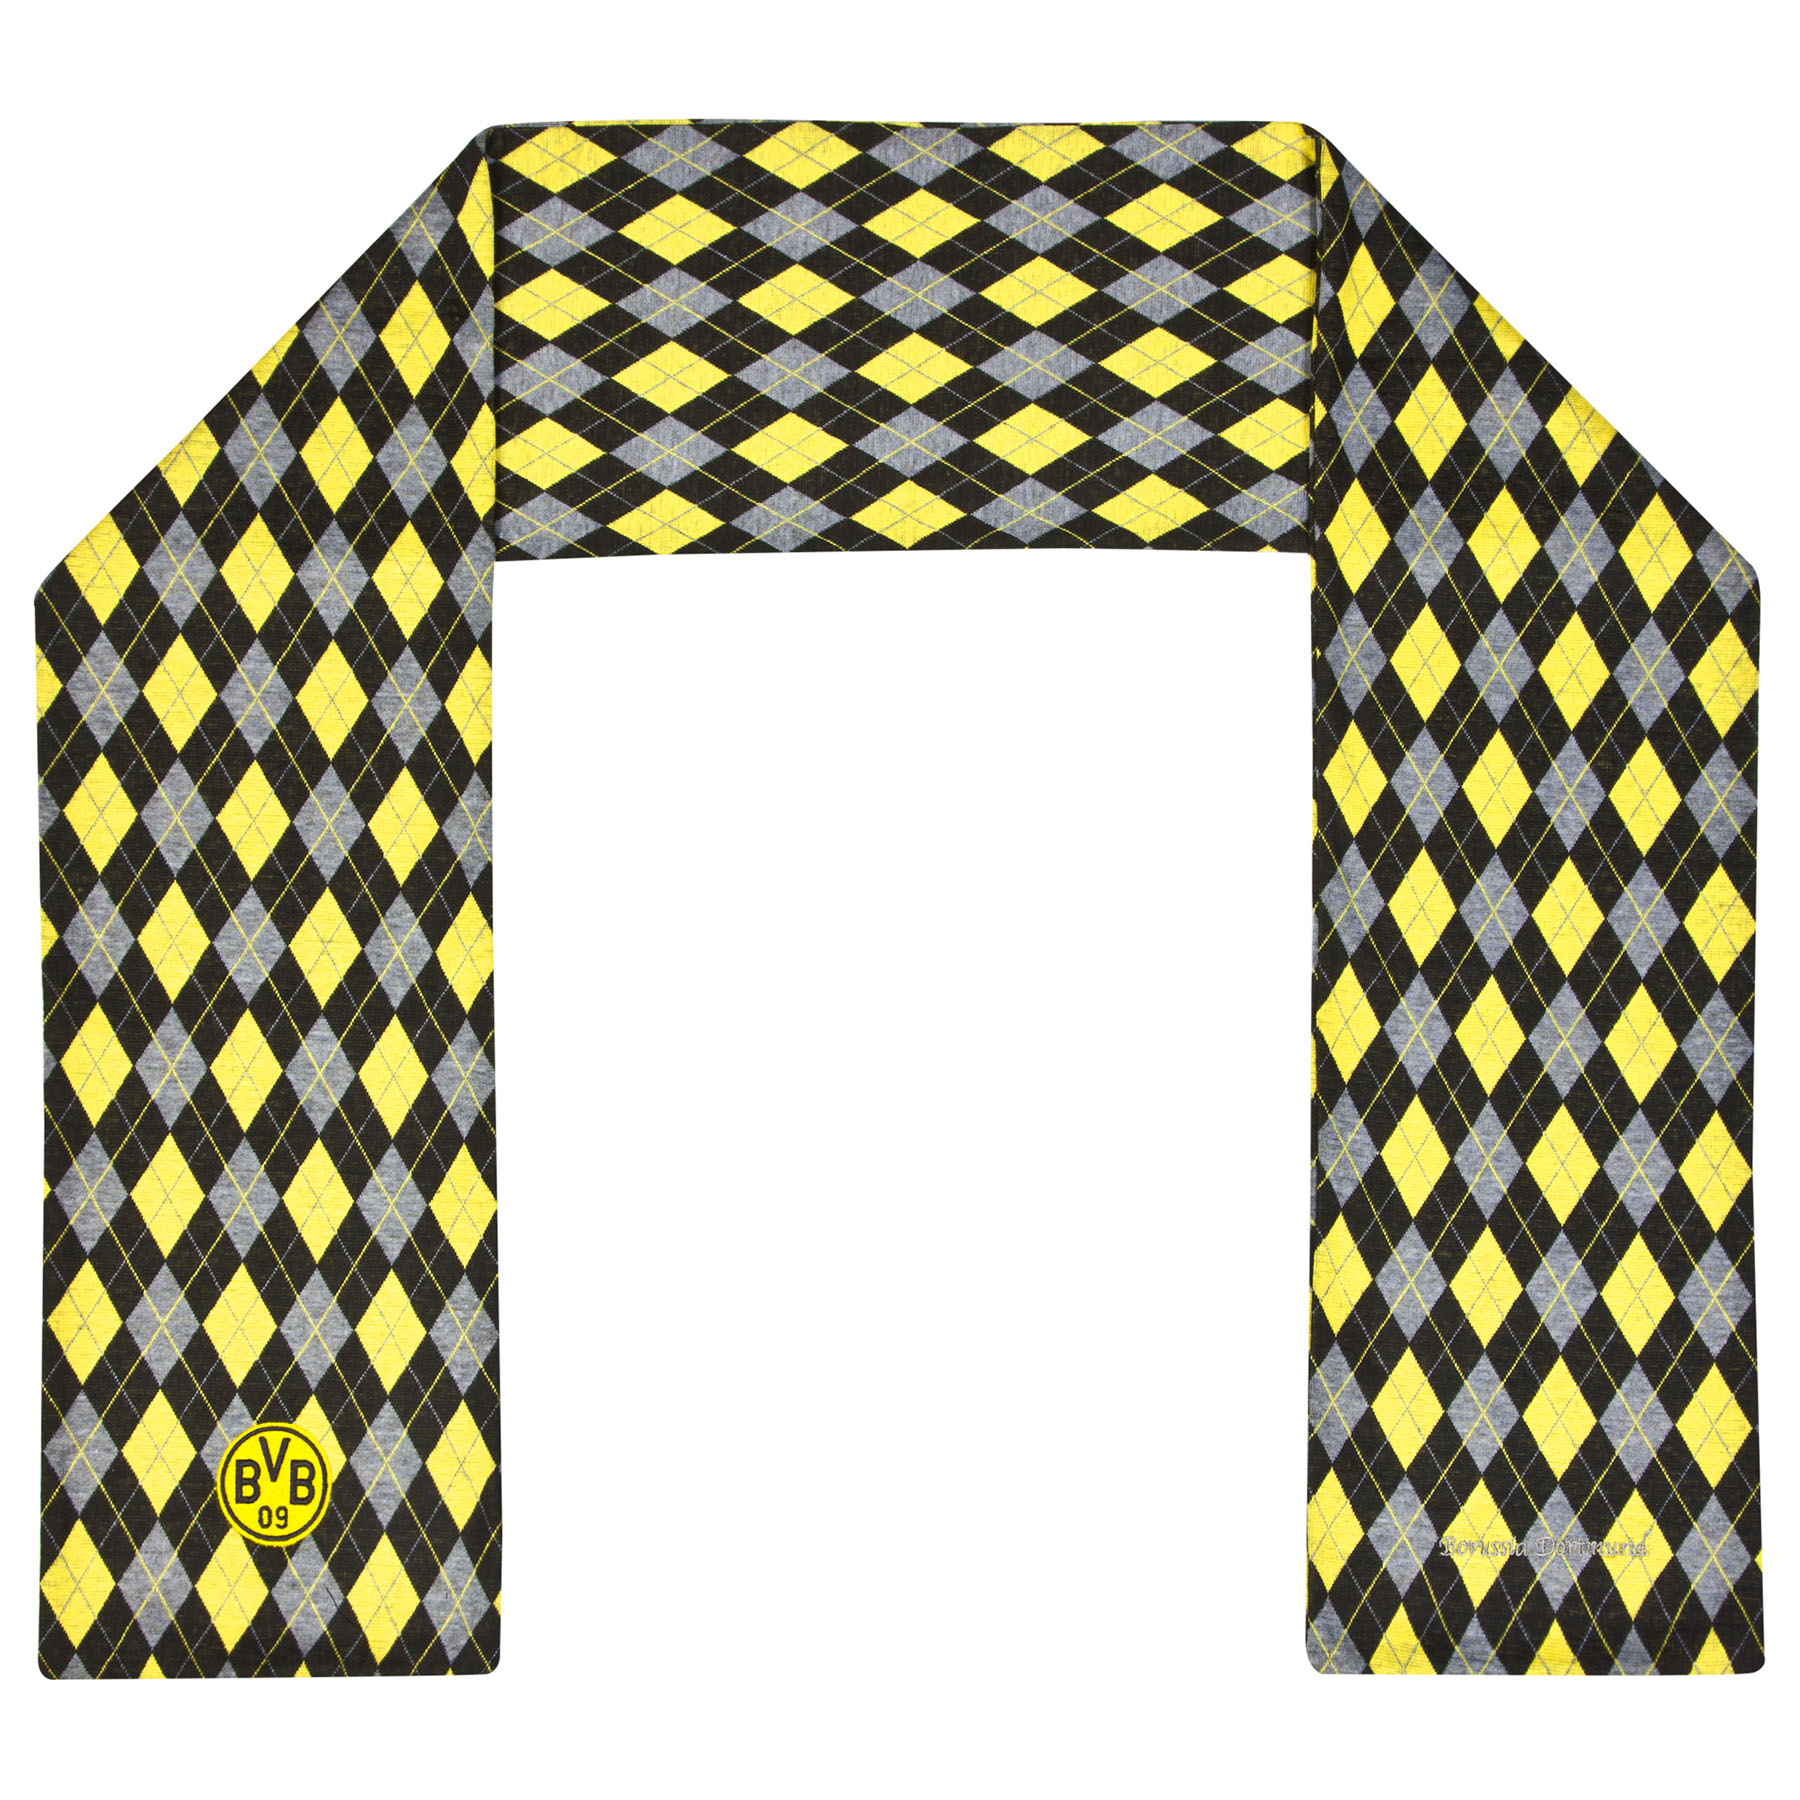 BVB Diamond Fashion Scarf - Black/Yellow